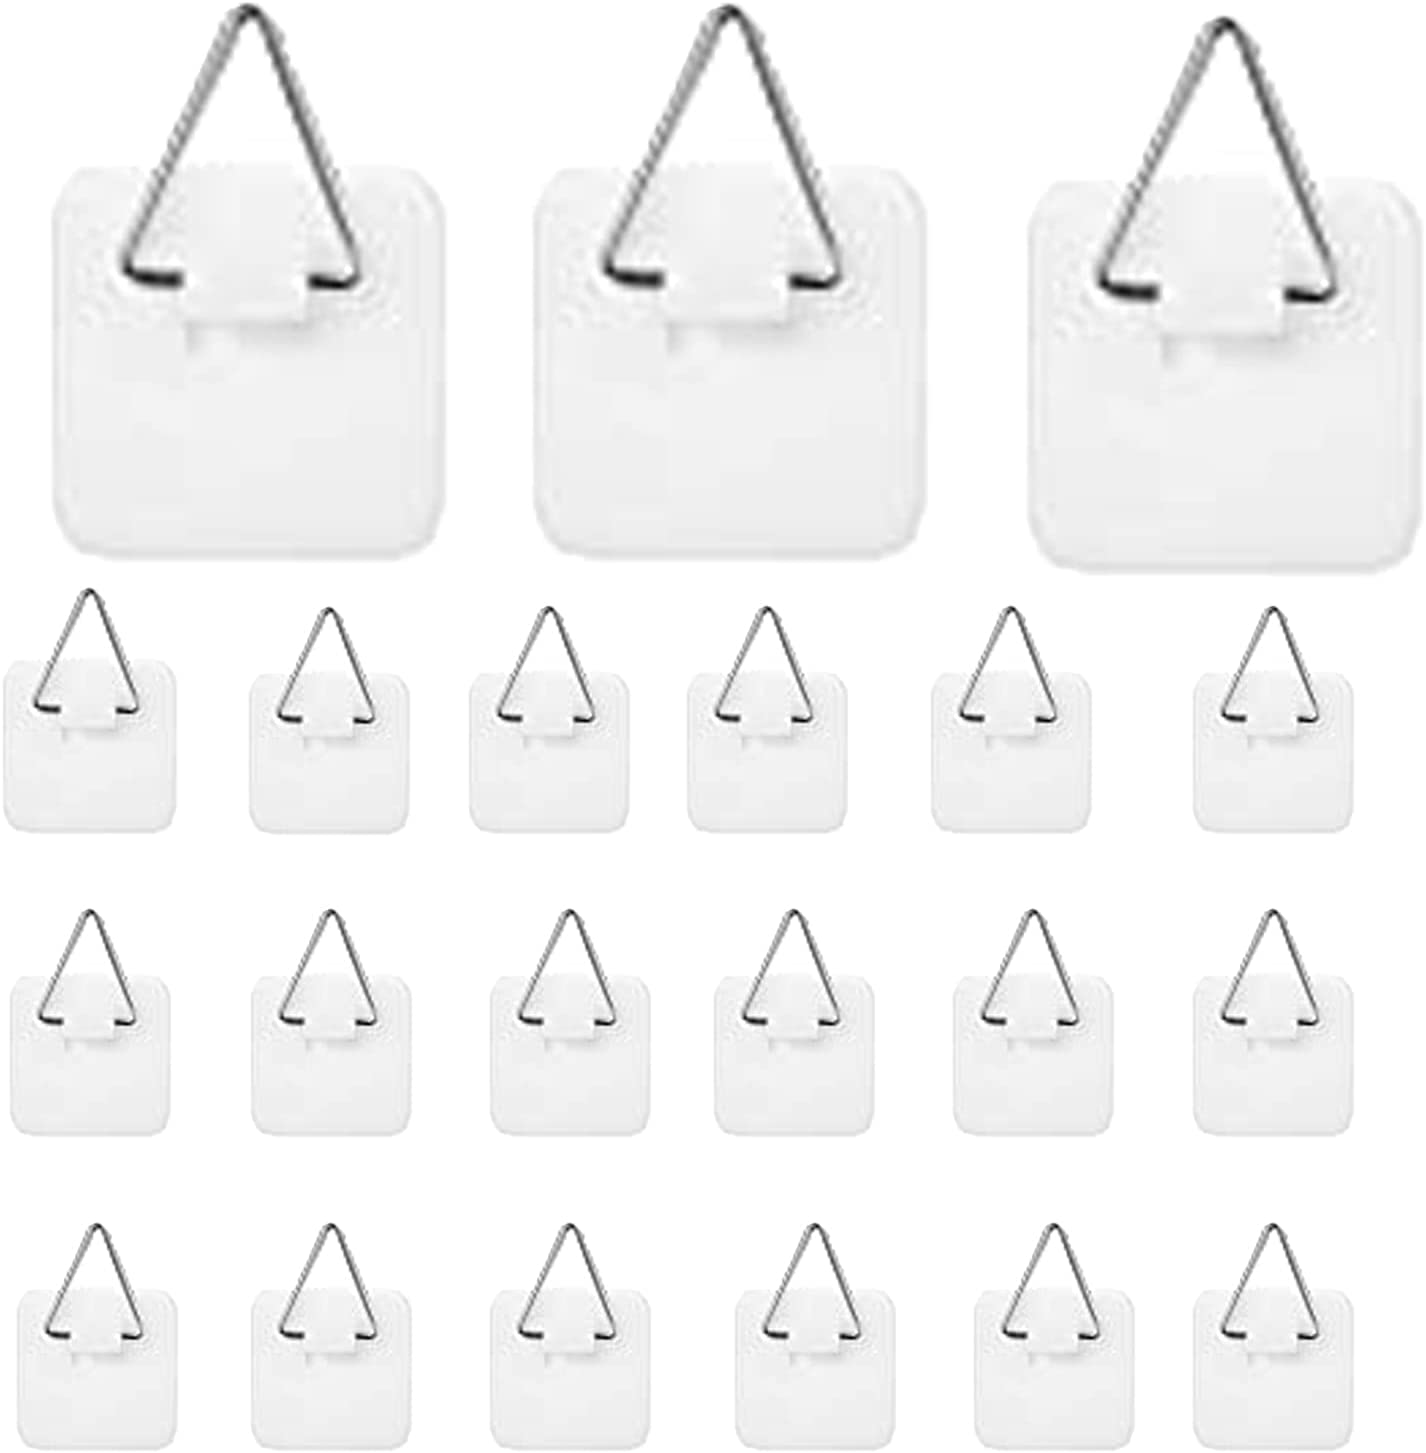 40 Pcs Sticky Hook, Plastic Hanging Hook, Invisible Adhesive Plate Hanger Set, Plate Hangers for The Wall Picture Hangers without Nails, for The Wall Plate Pictures Wall Art Decor Supplies